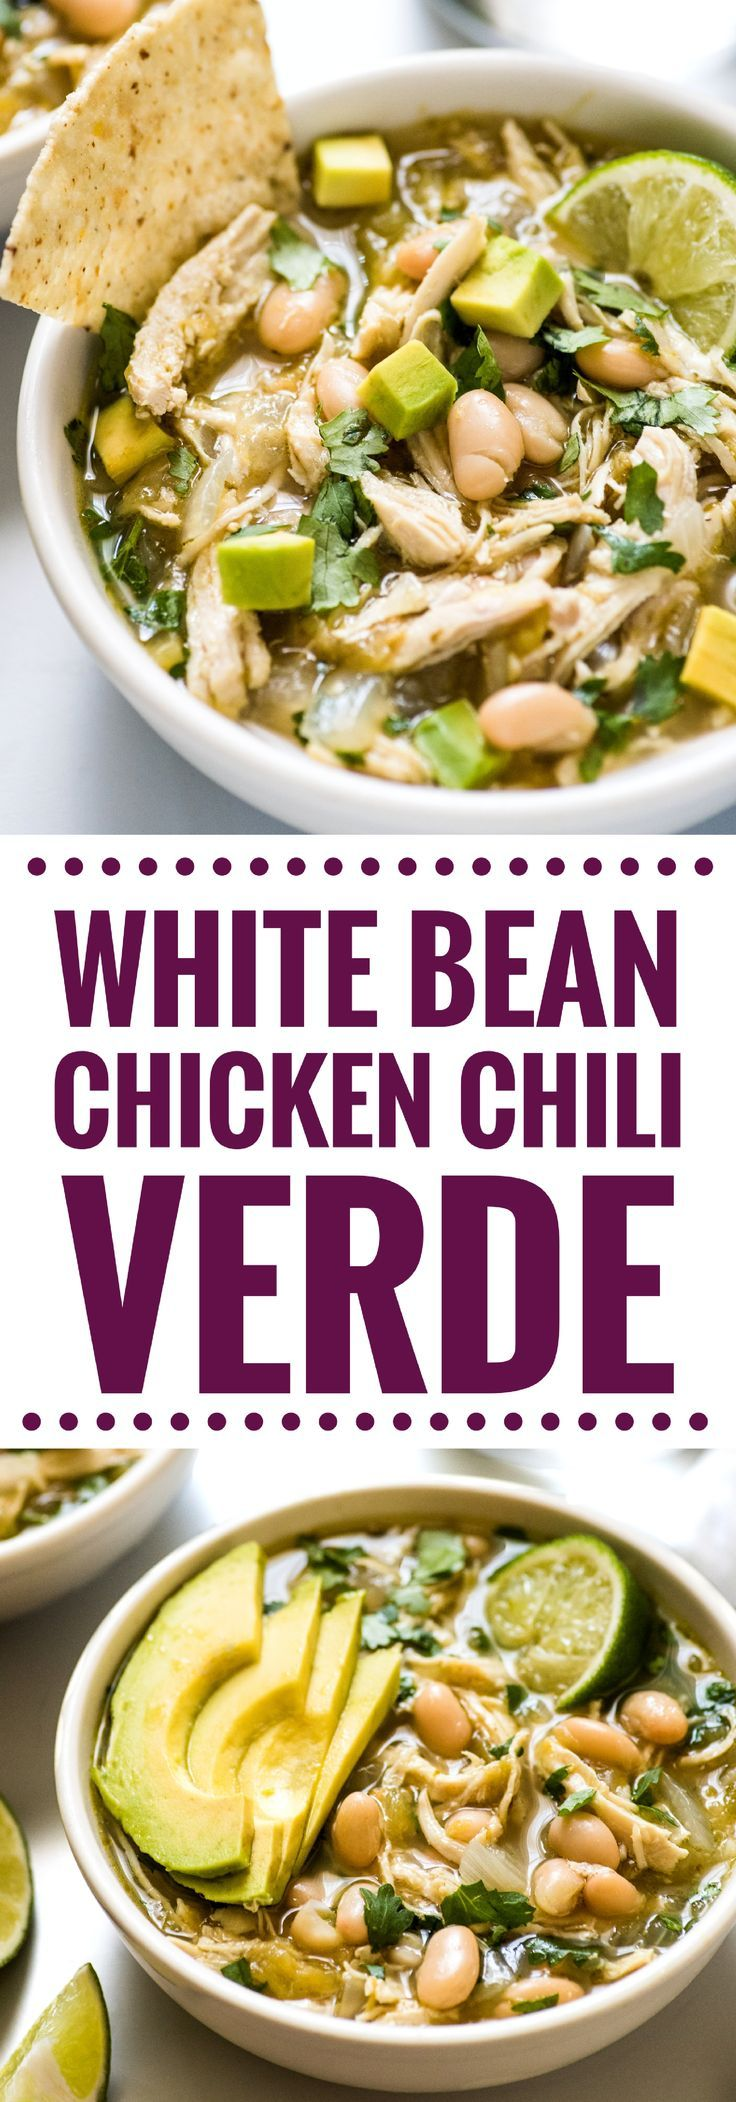 This hearty White Bean Chicken Chili Verde Soup is a comforting one pot meal made with salsa verde that's naturally gluten free for the whole family!